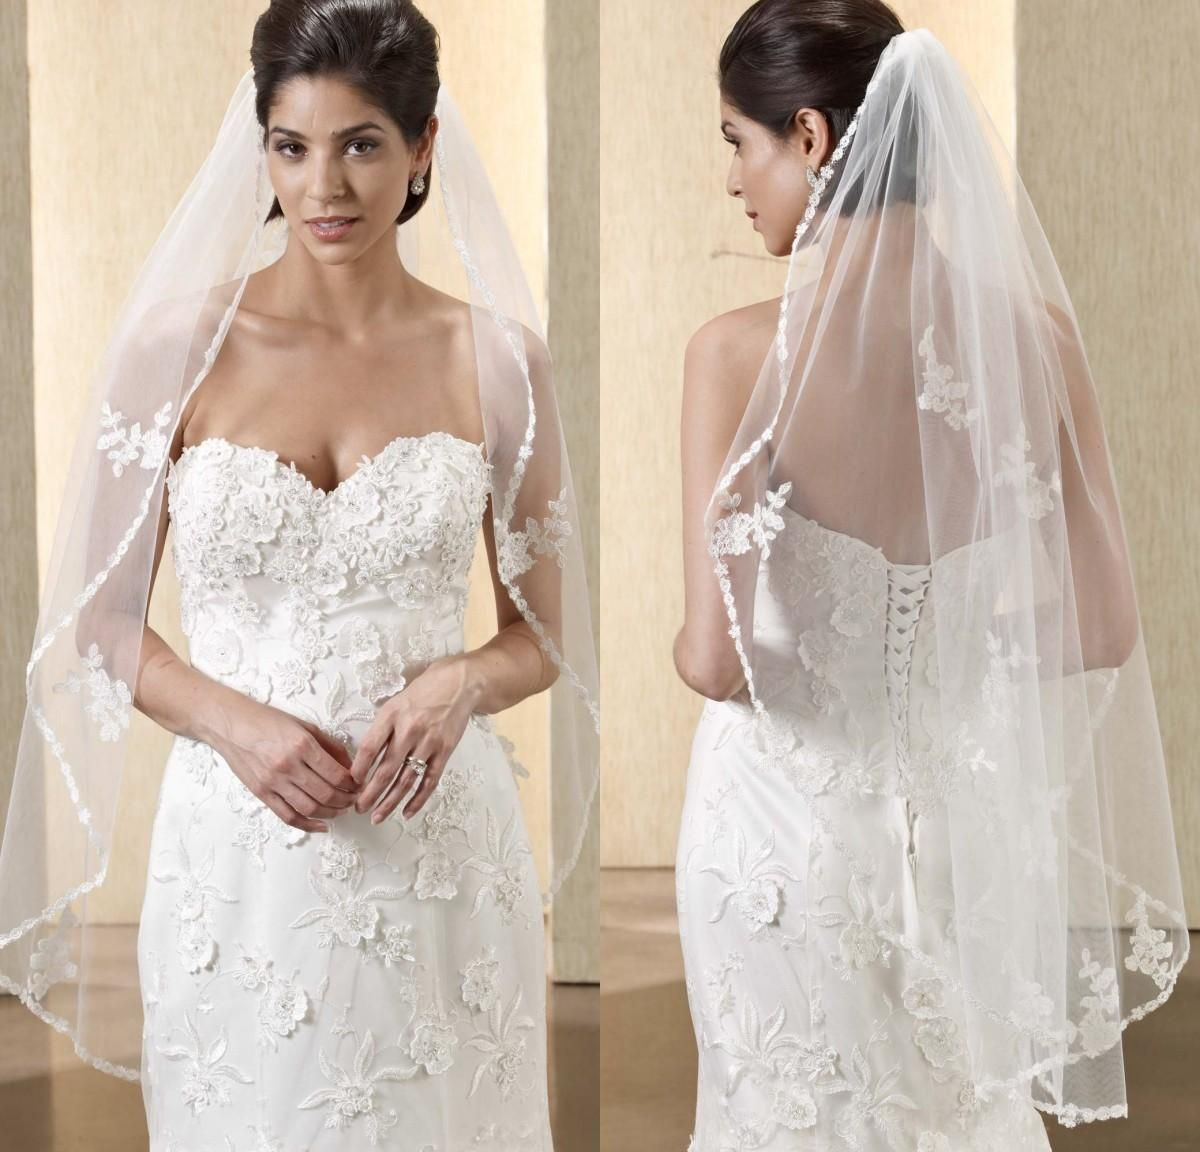 Custommade white and ivory wedding veils from eiffelbride with